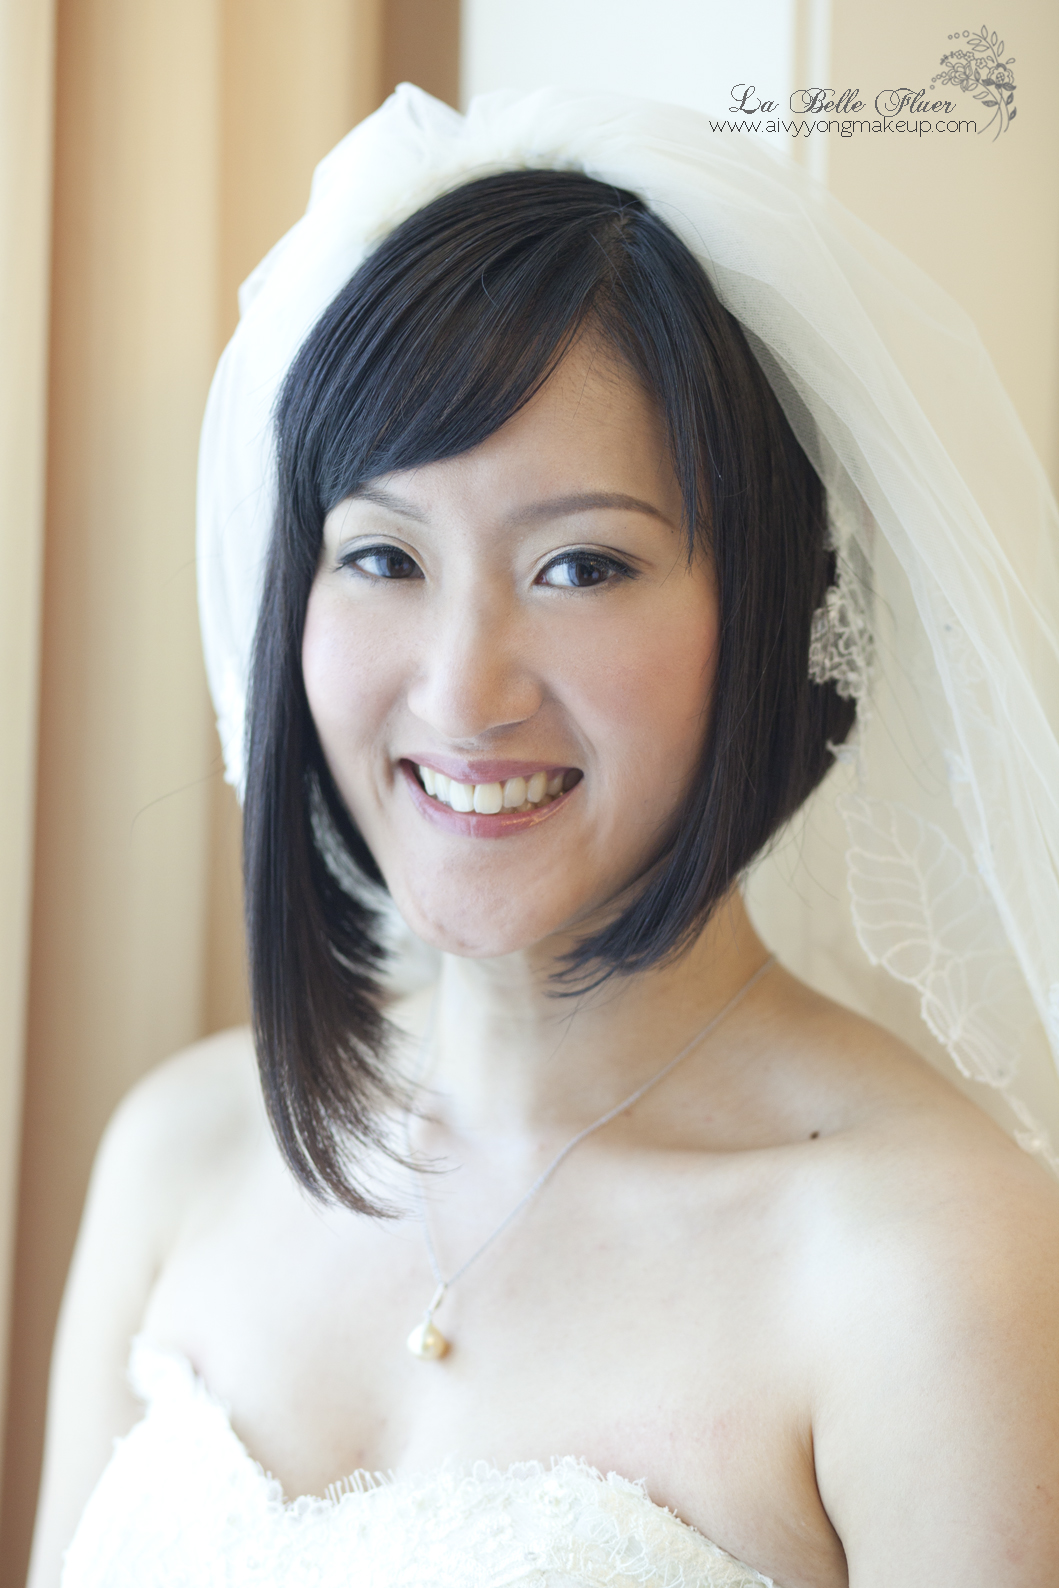 lovely bride denise aivy yong air brush bridal make up. Black Bedroom Furniture Sets. Home Design Ideas